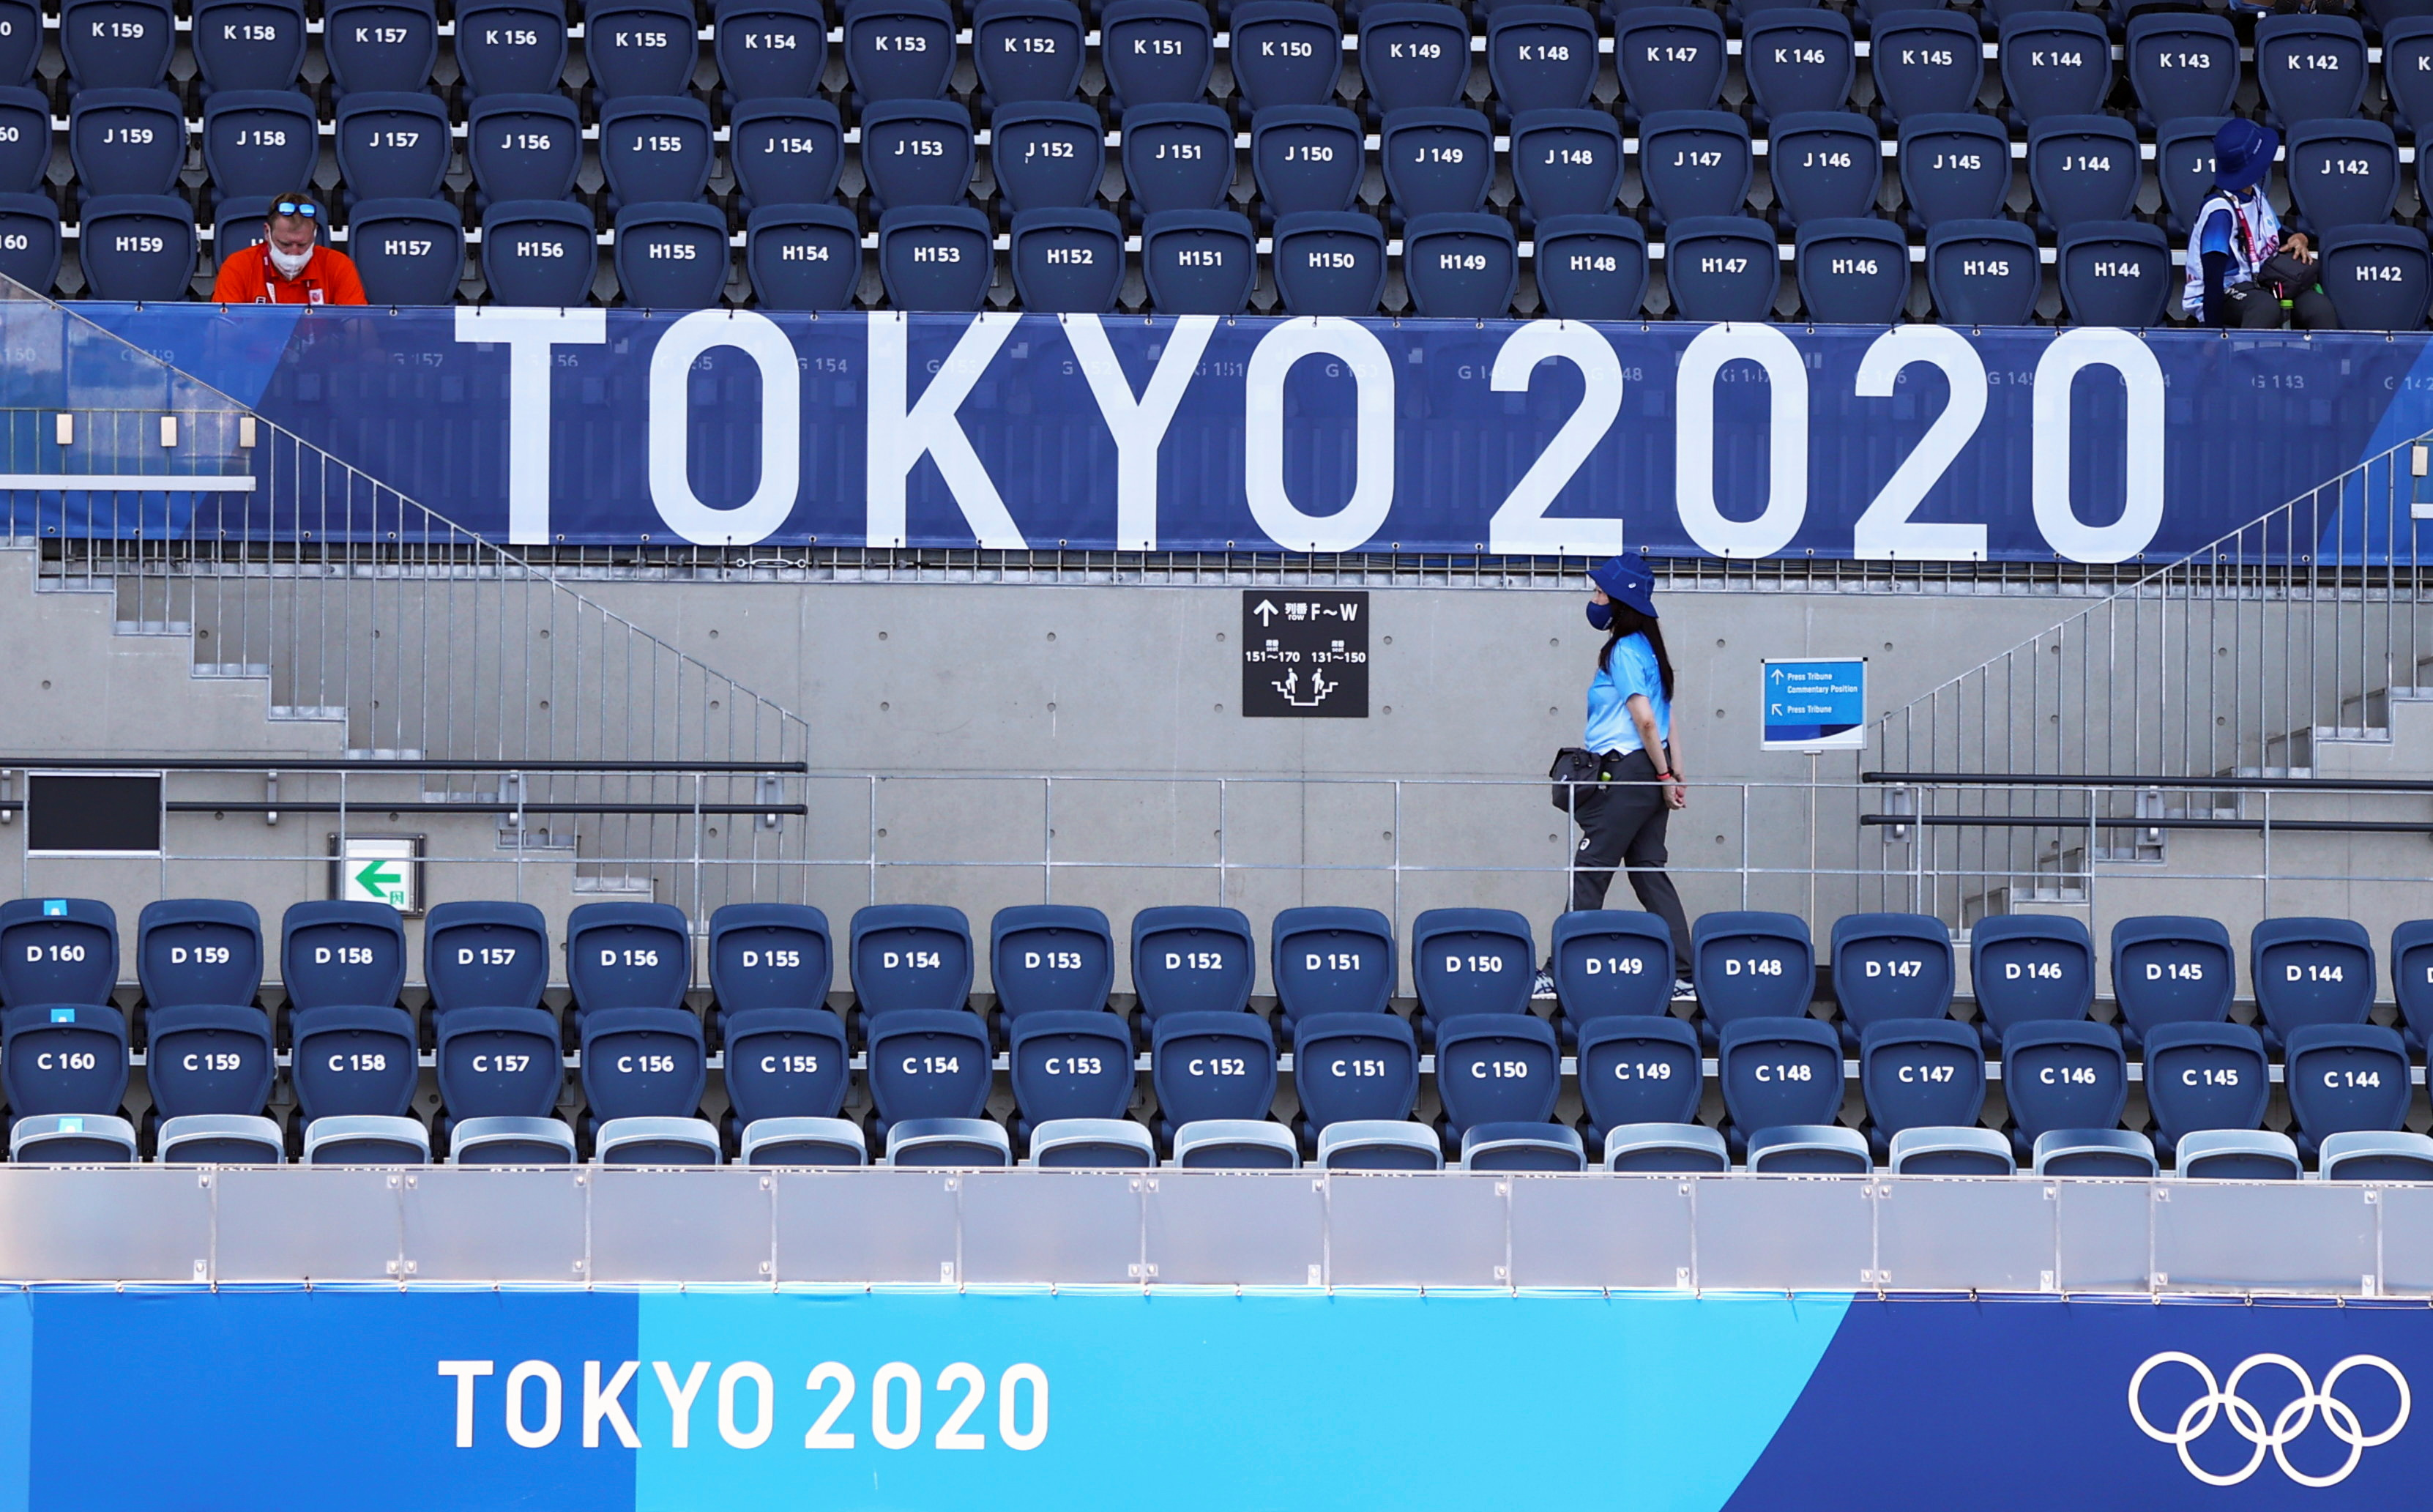 A spectator sits as a volunteer walks beaneath a logo during the Tokyo 2020 Olympic Games in at the Oi Hockey Stadium in Tokyo, Japan, July 24, 2021. REUTERS/Siphiwe Sibeko